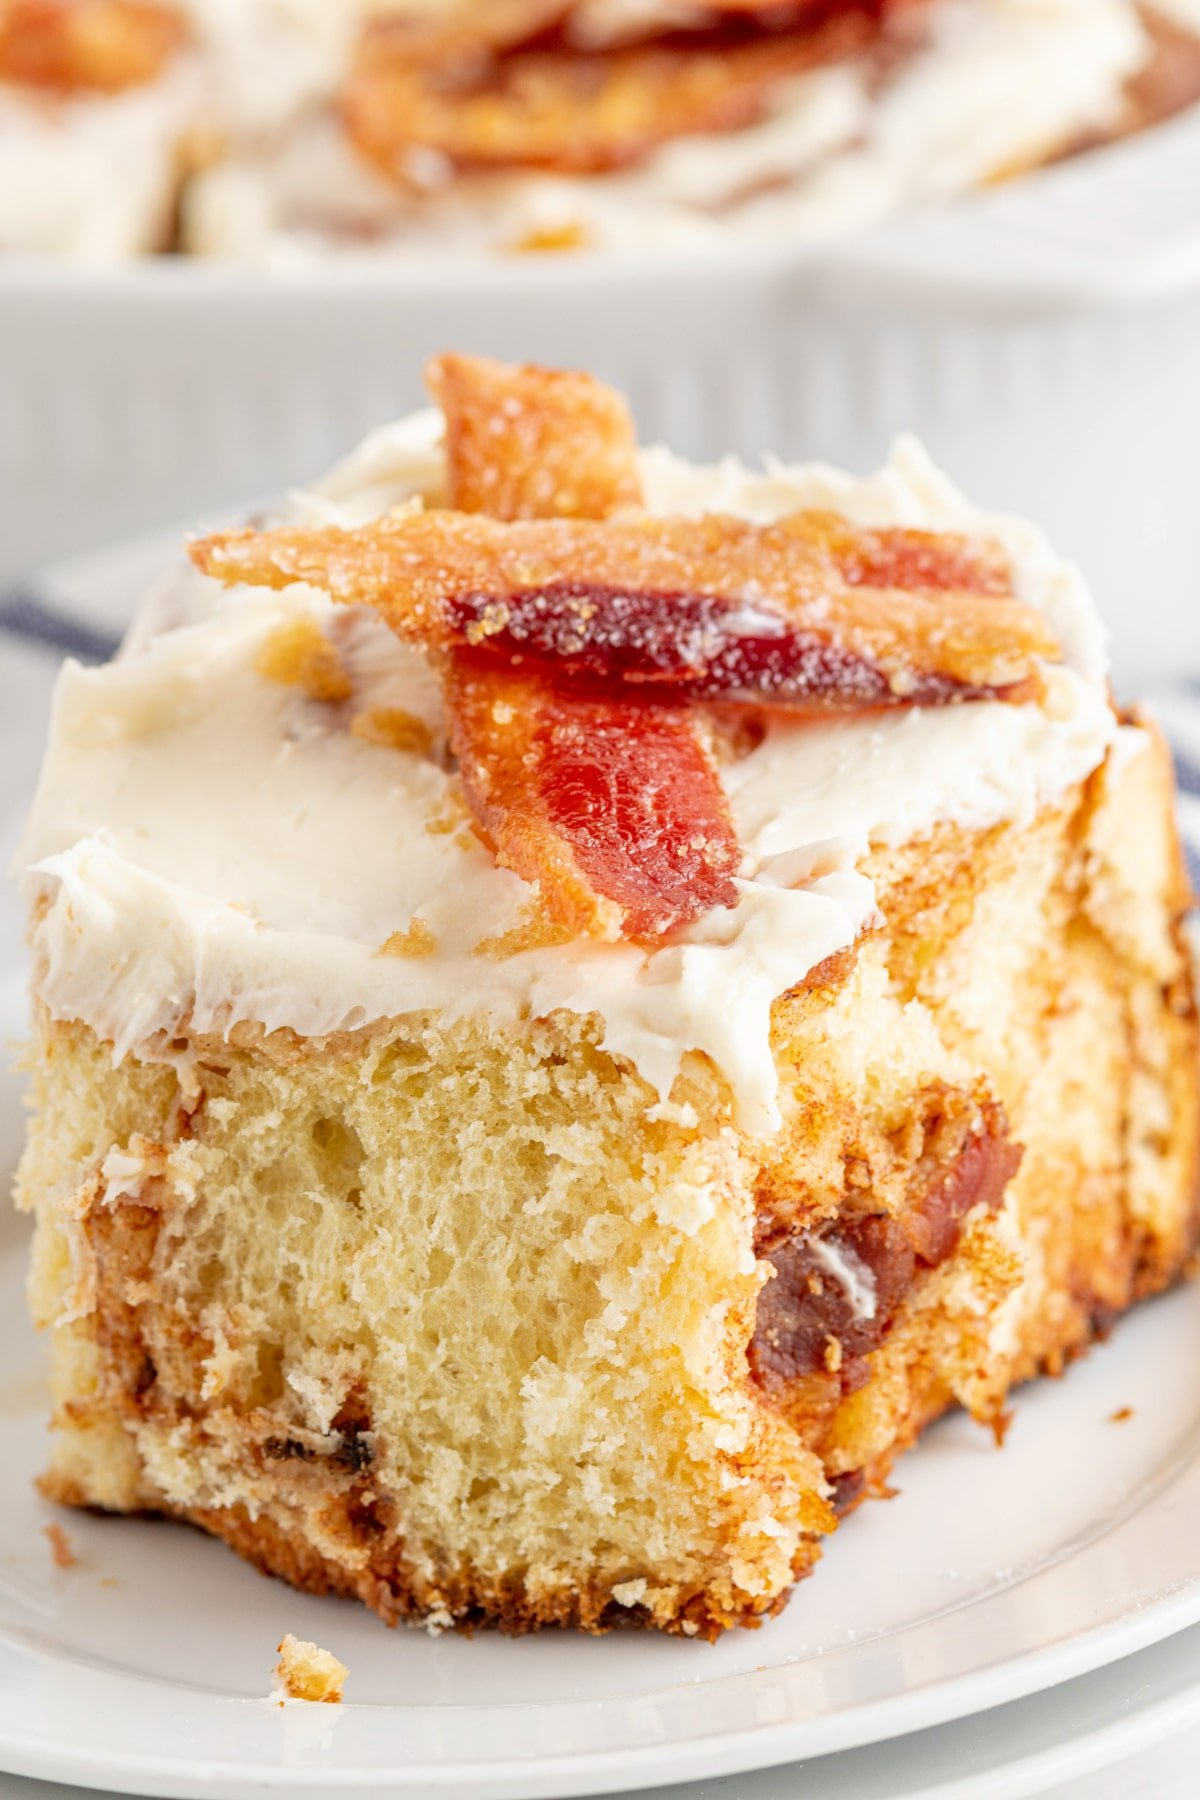 Bacon cinnamon roll with candied bacon on top